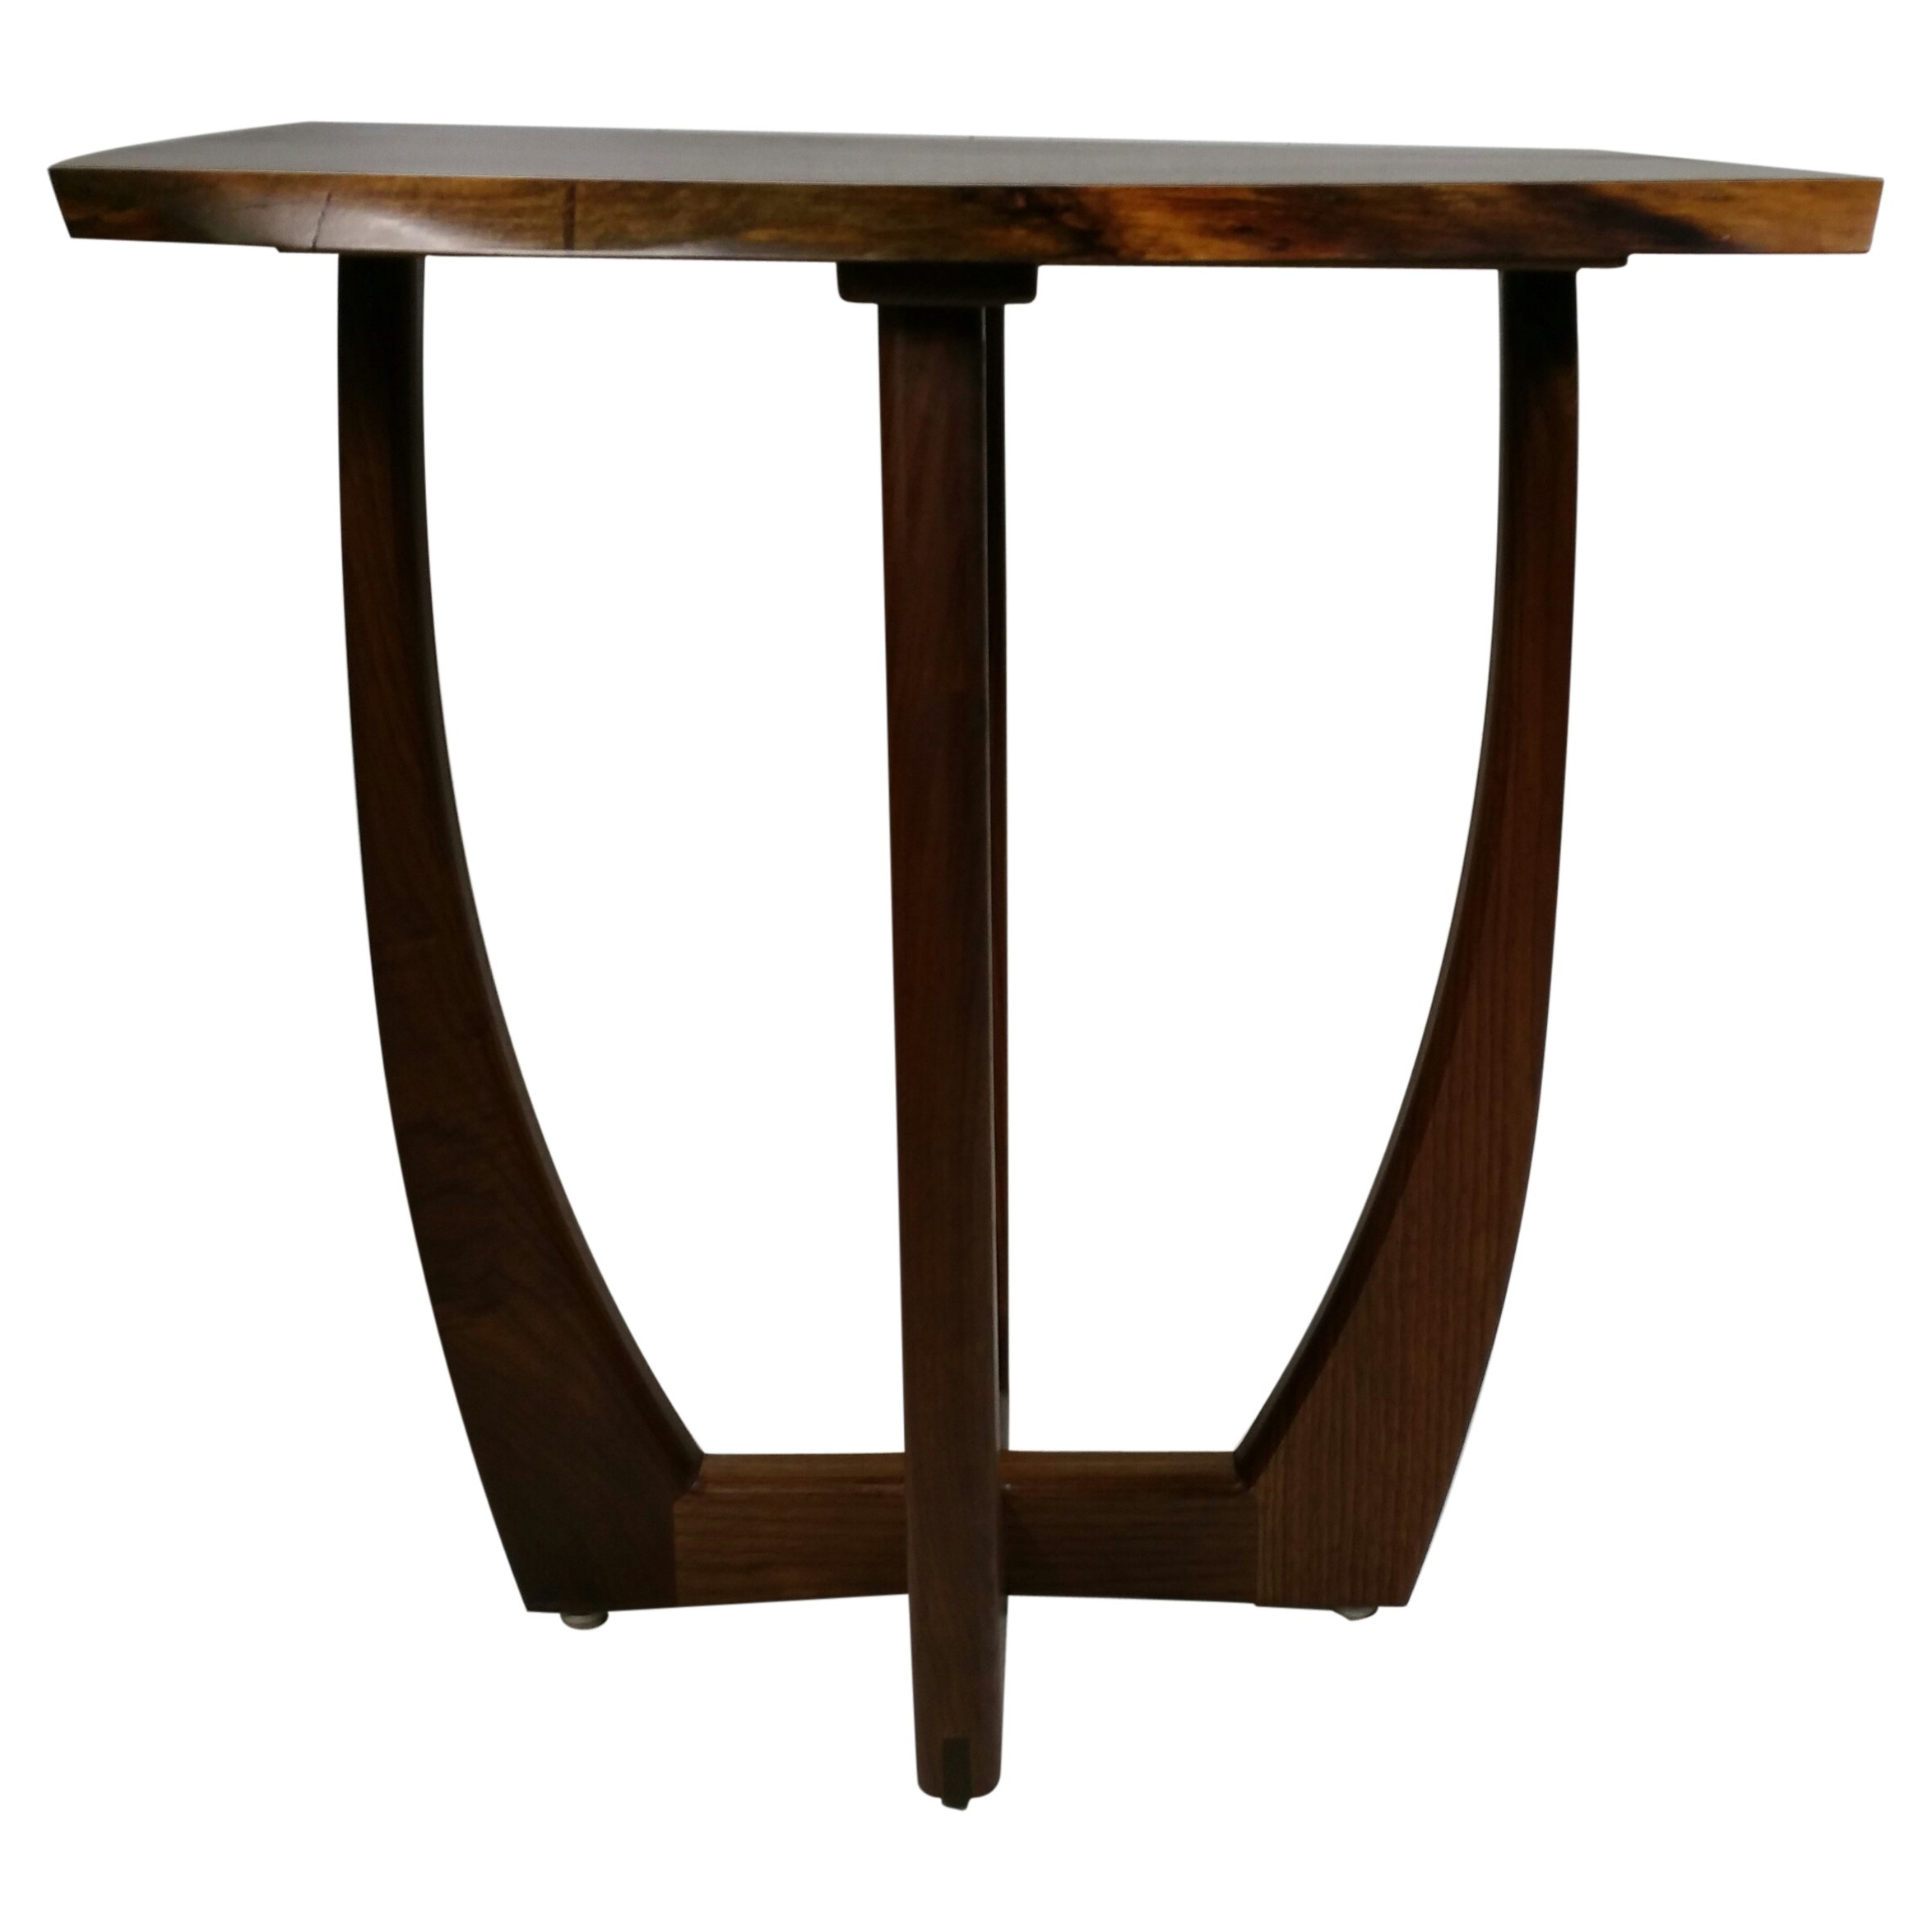 Palmer Storage Cocktail Tables Pertaining To Fashionable Cerused Side Tables – 23 For Sale At 1stdibs (View 10 of 20)